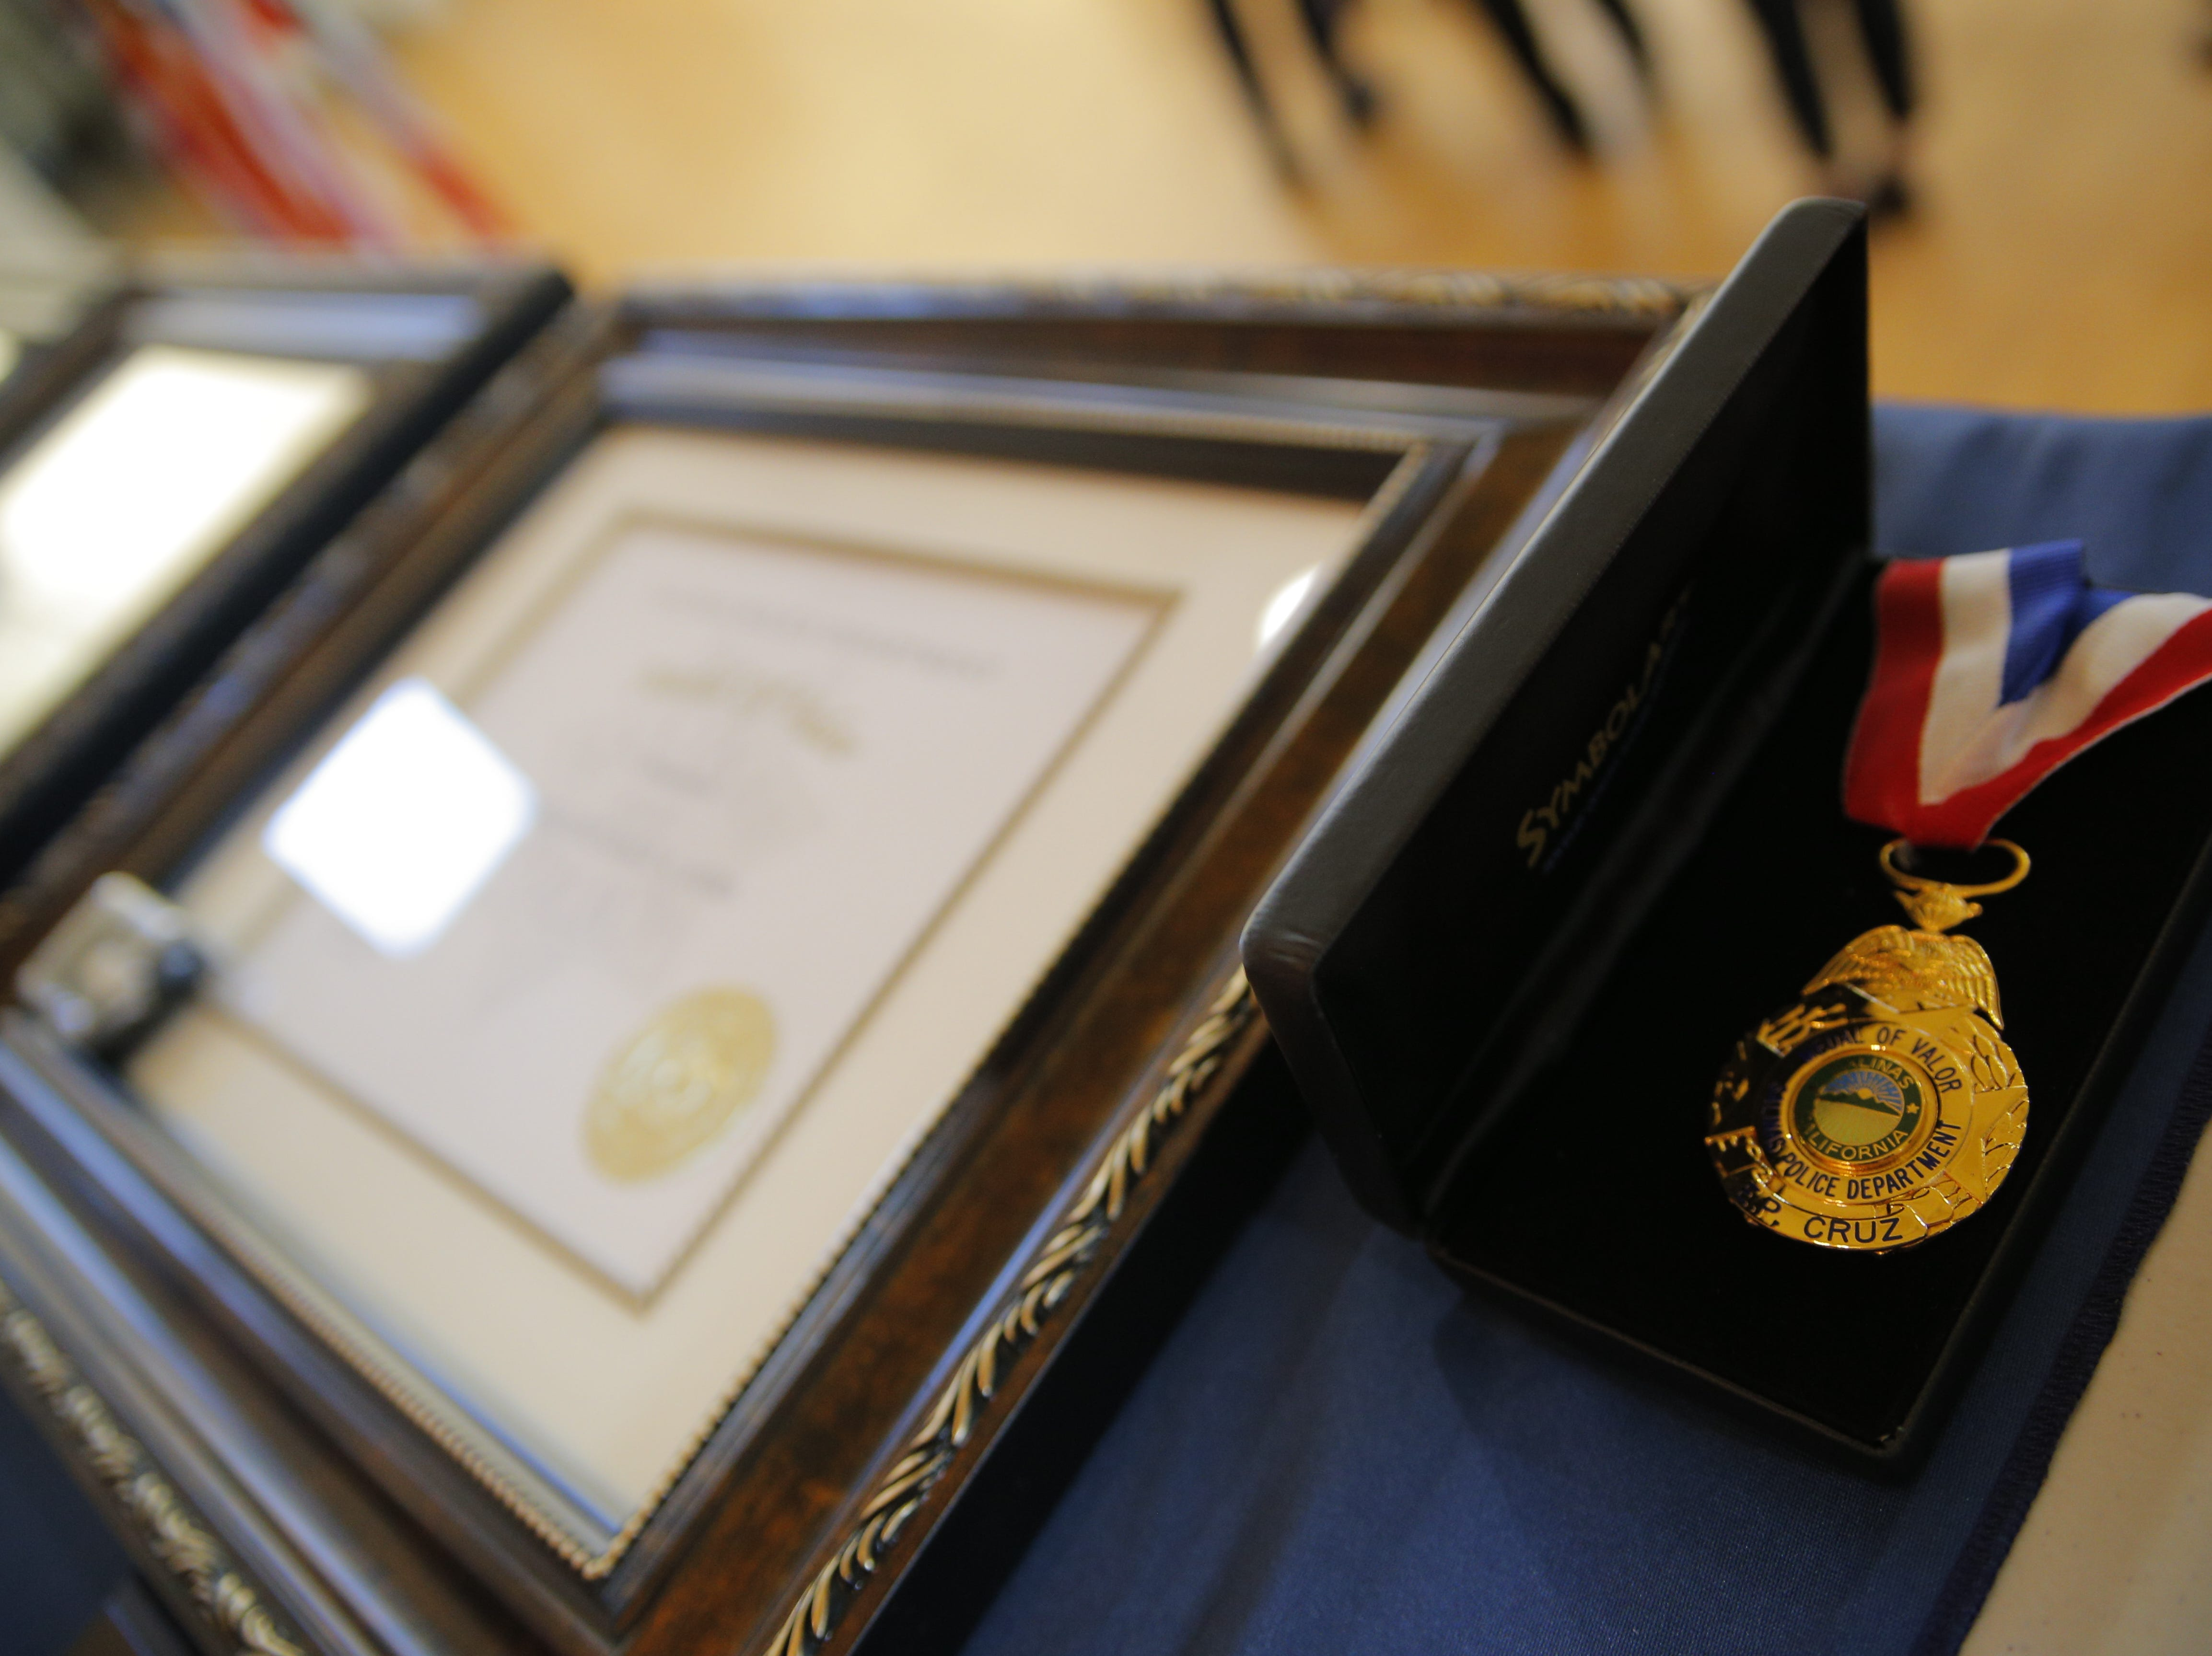 The Salinas Police Department's Medal of Valor on display March 14, 2019, at the Salinas Police Department's 2018 awards ceremony.